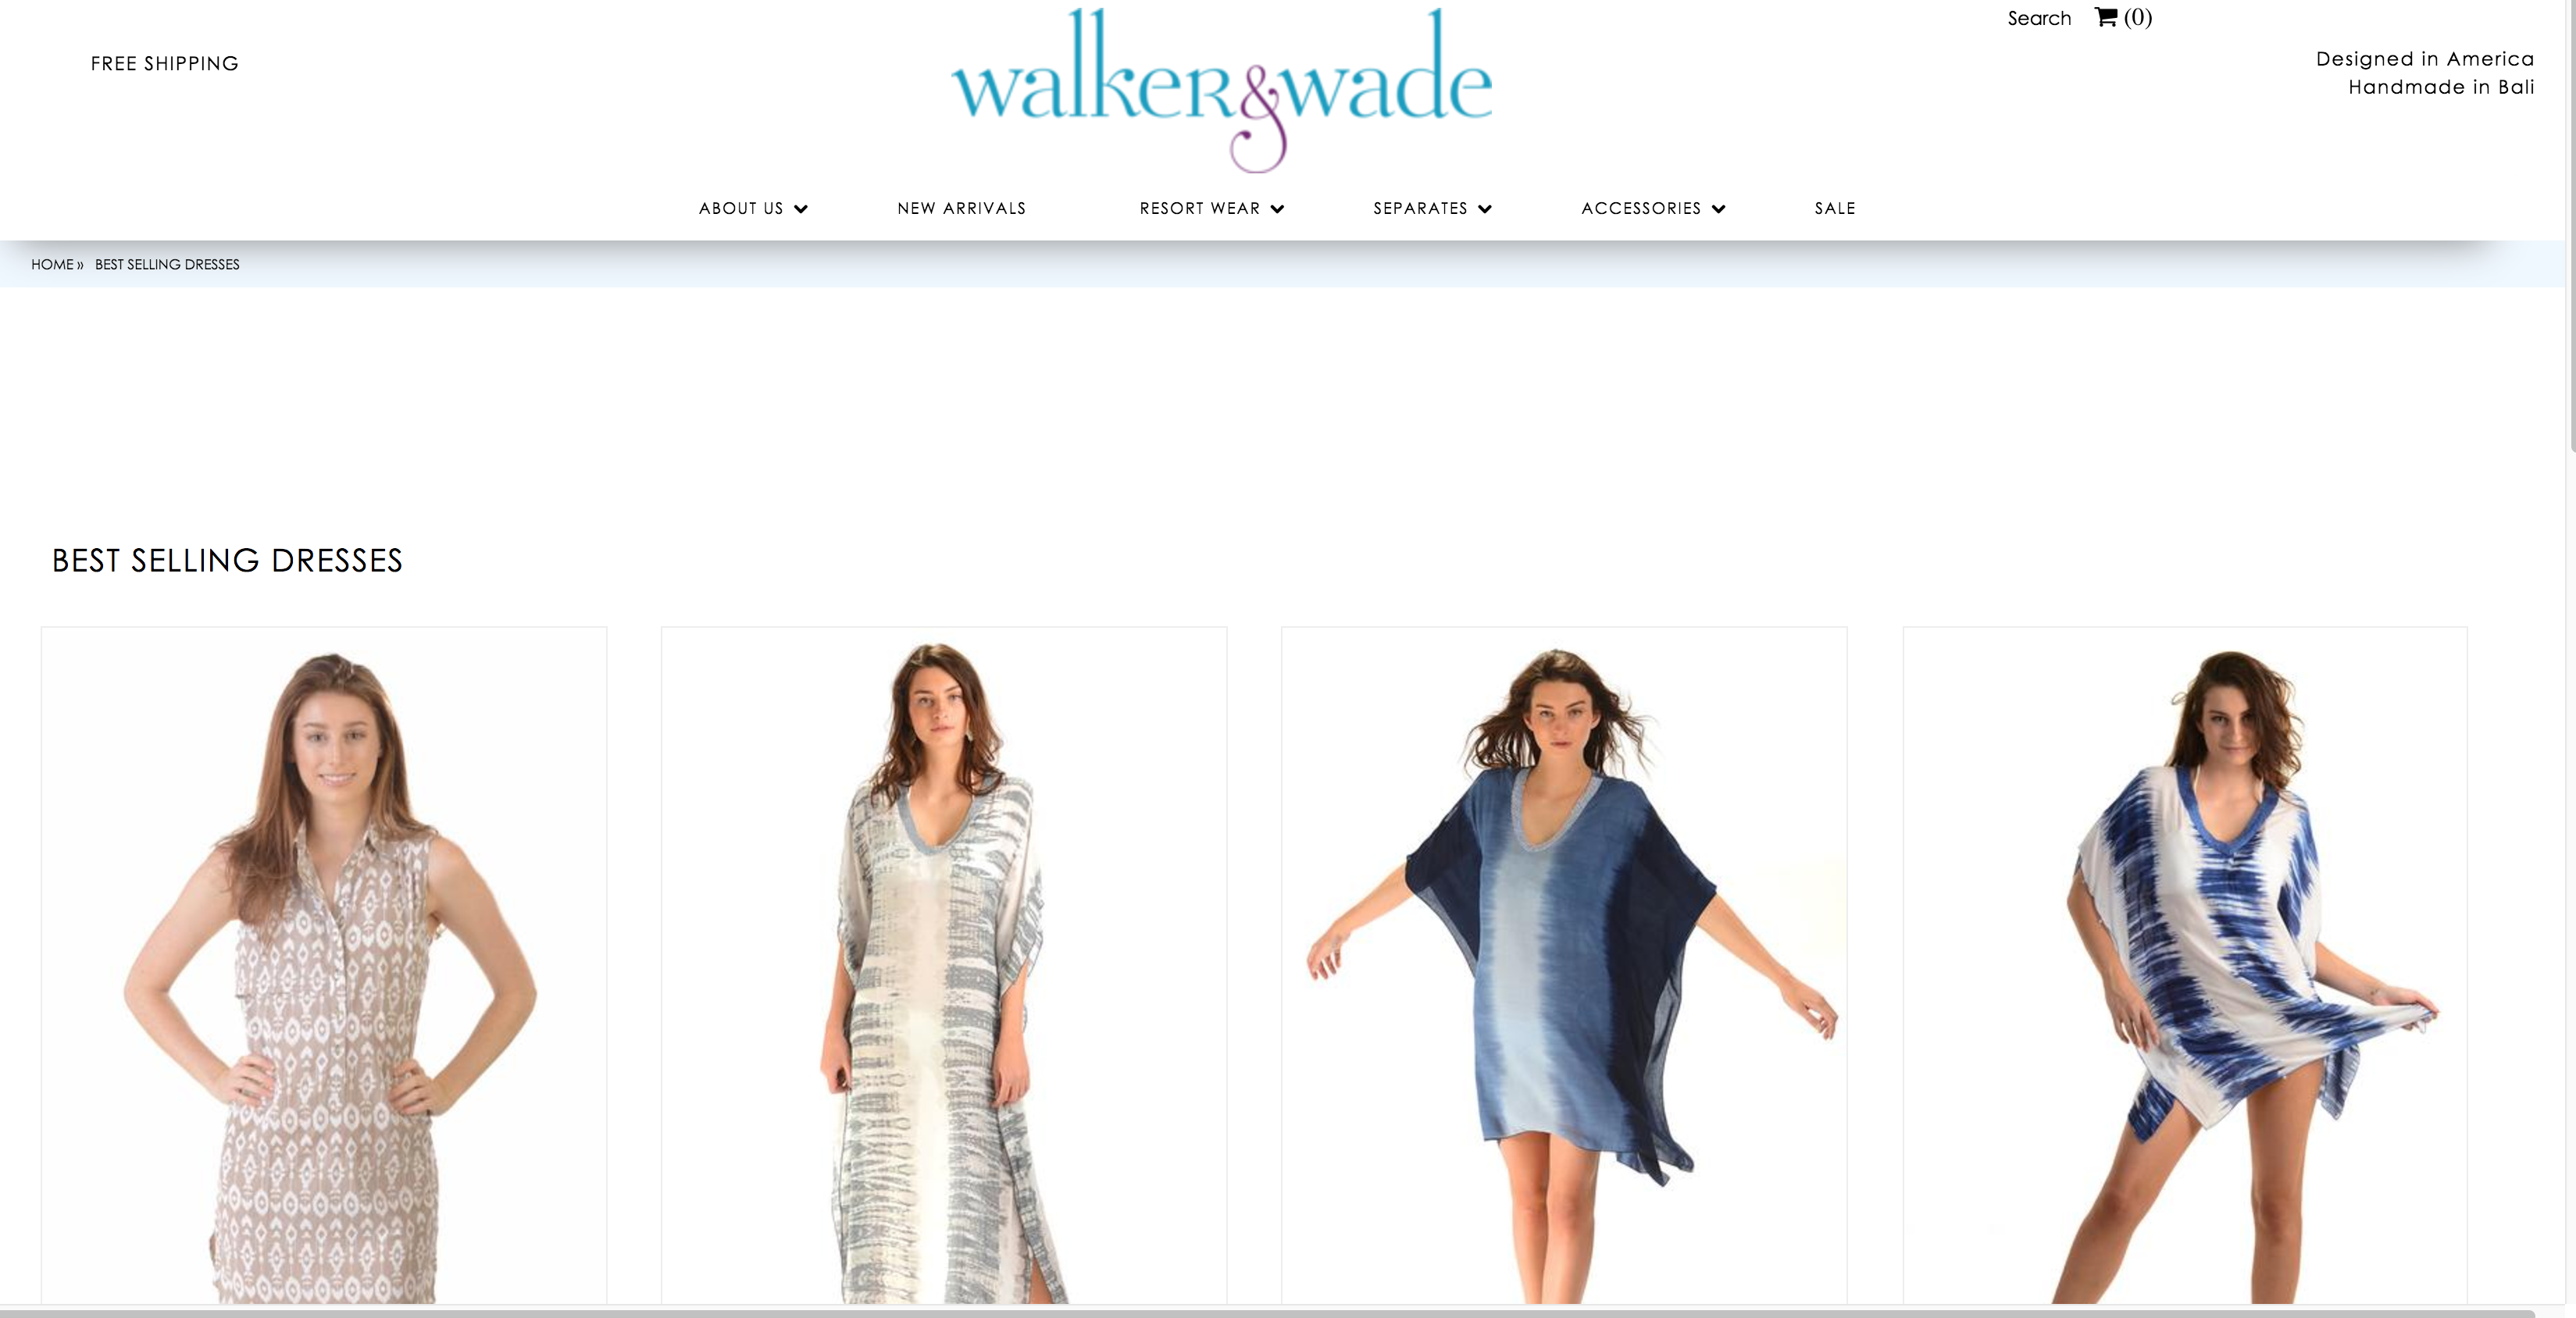 WalkerandWade.com